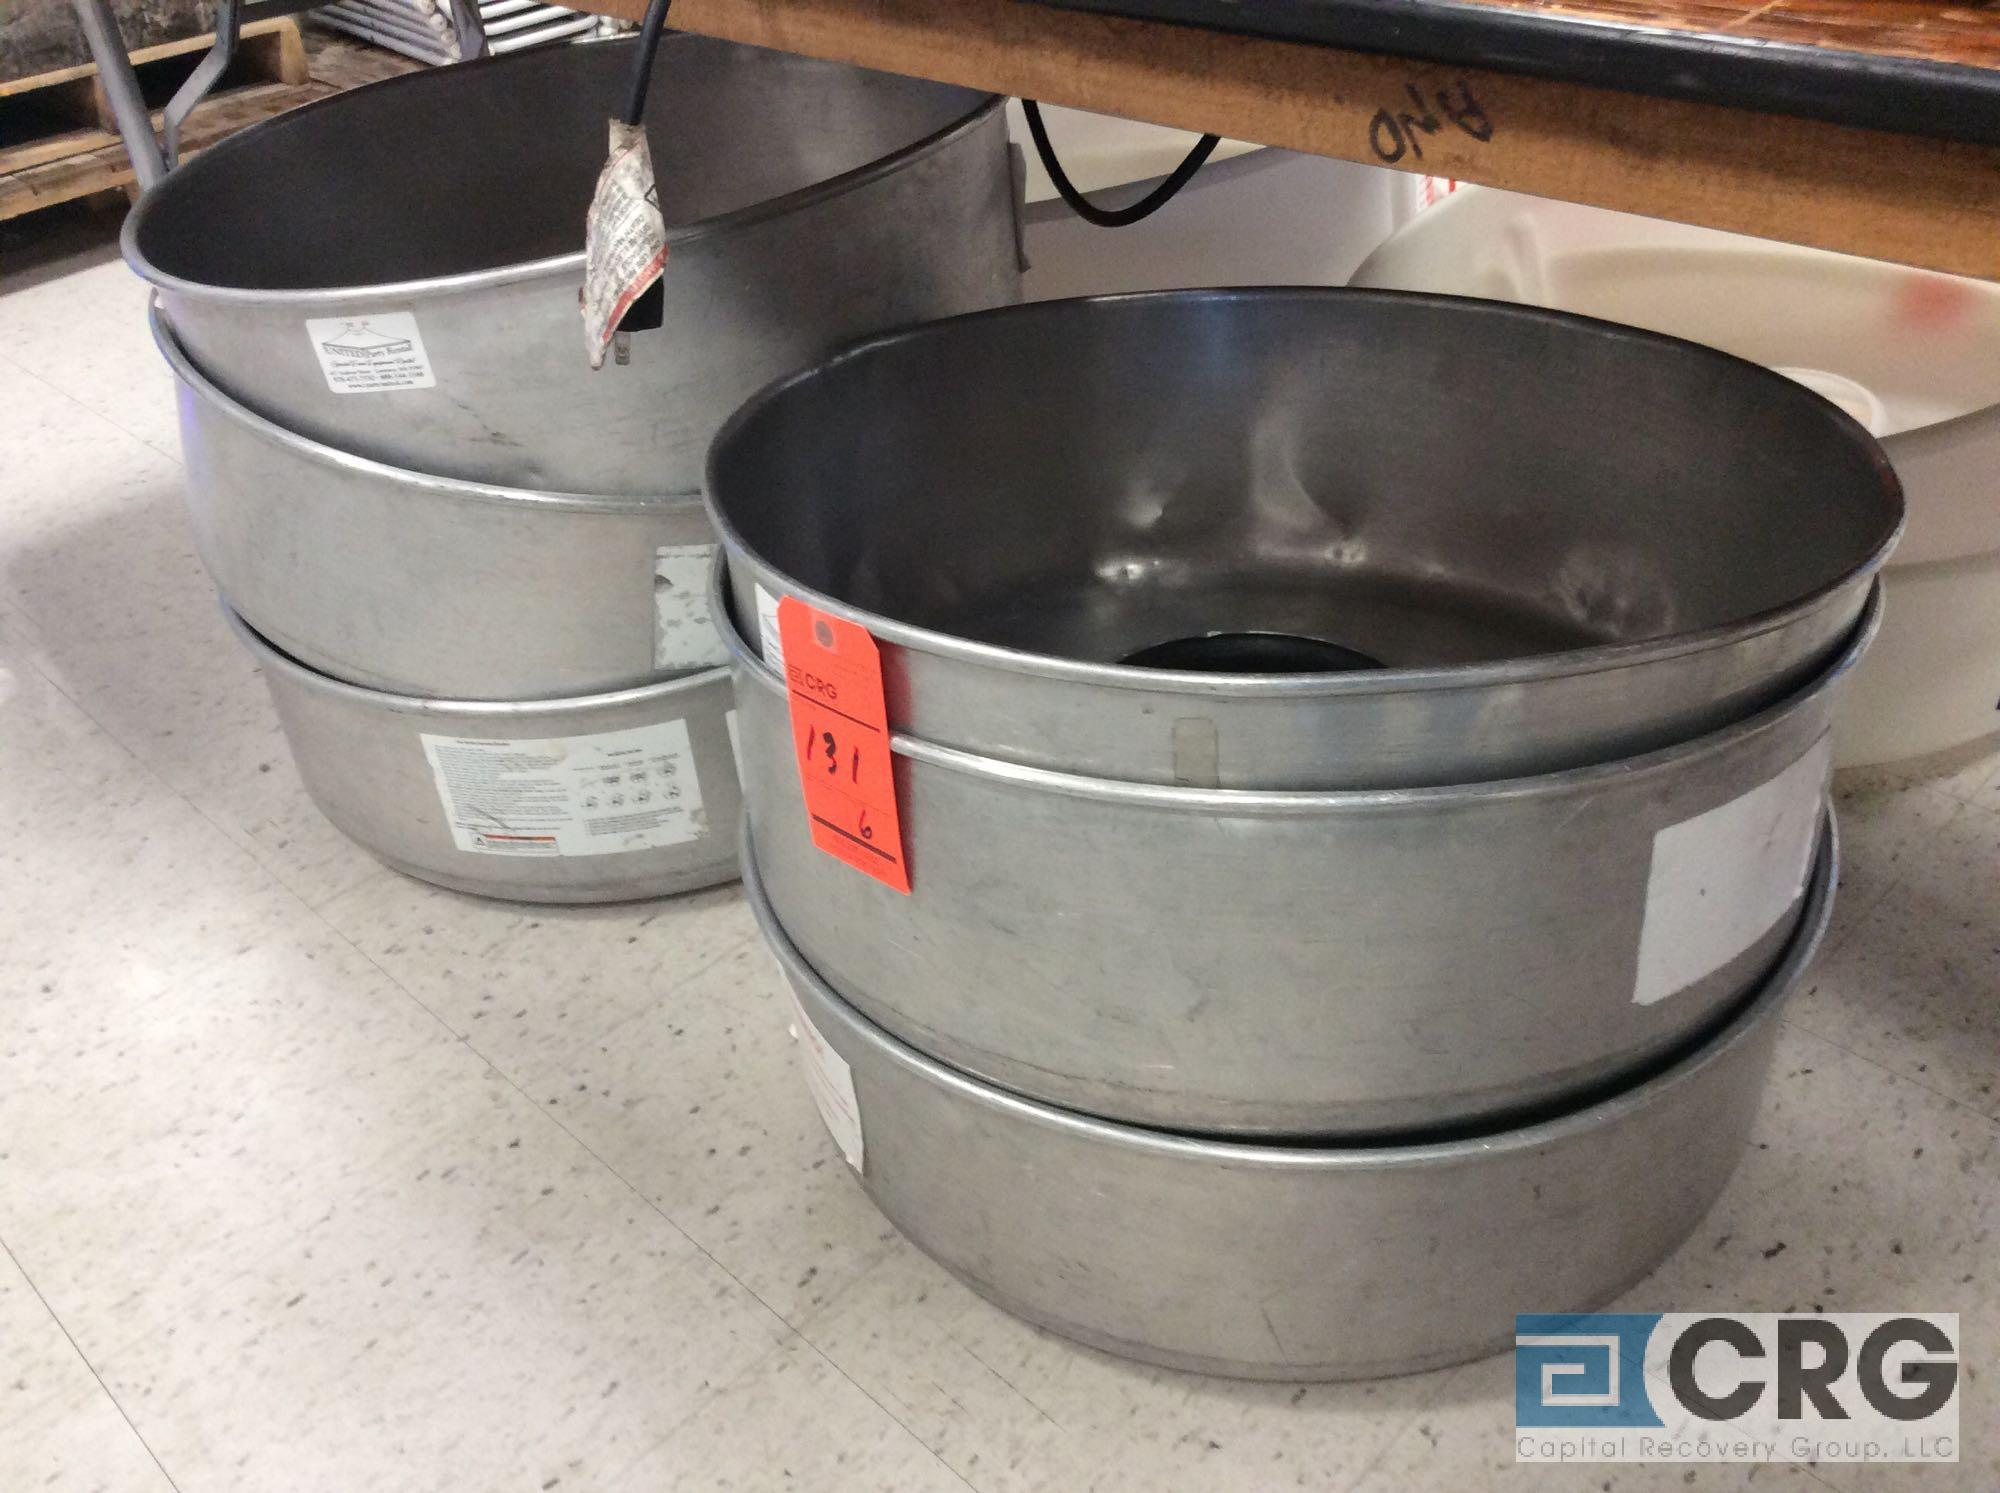 Lot of (6) spare cotton candy bowls